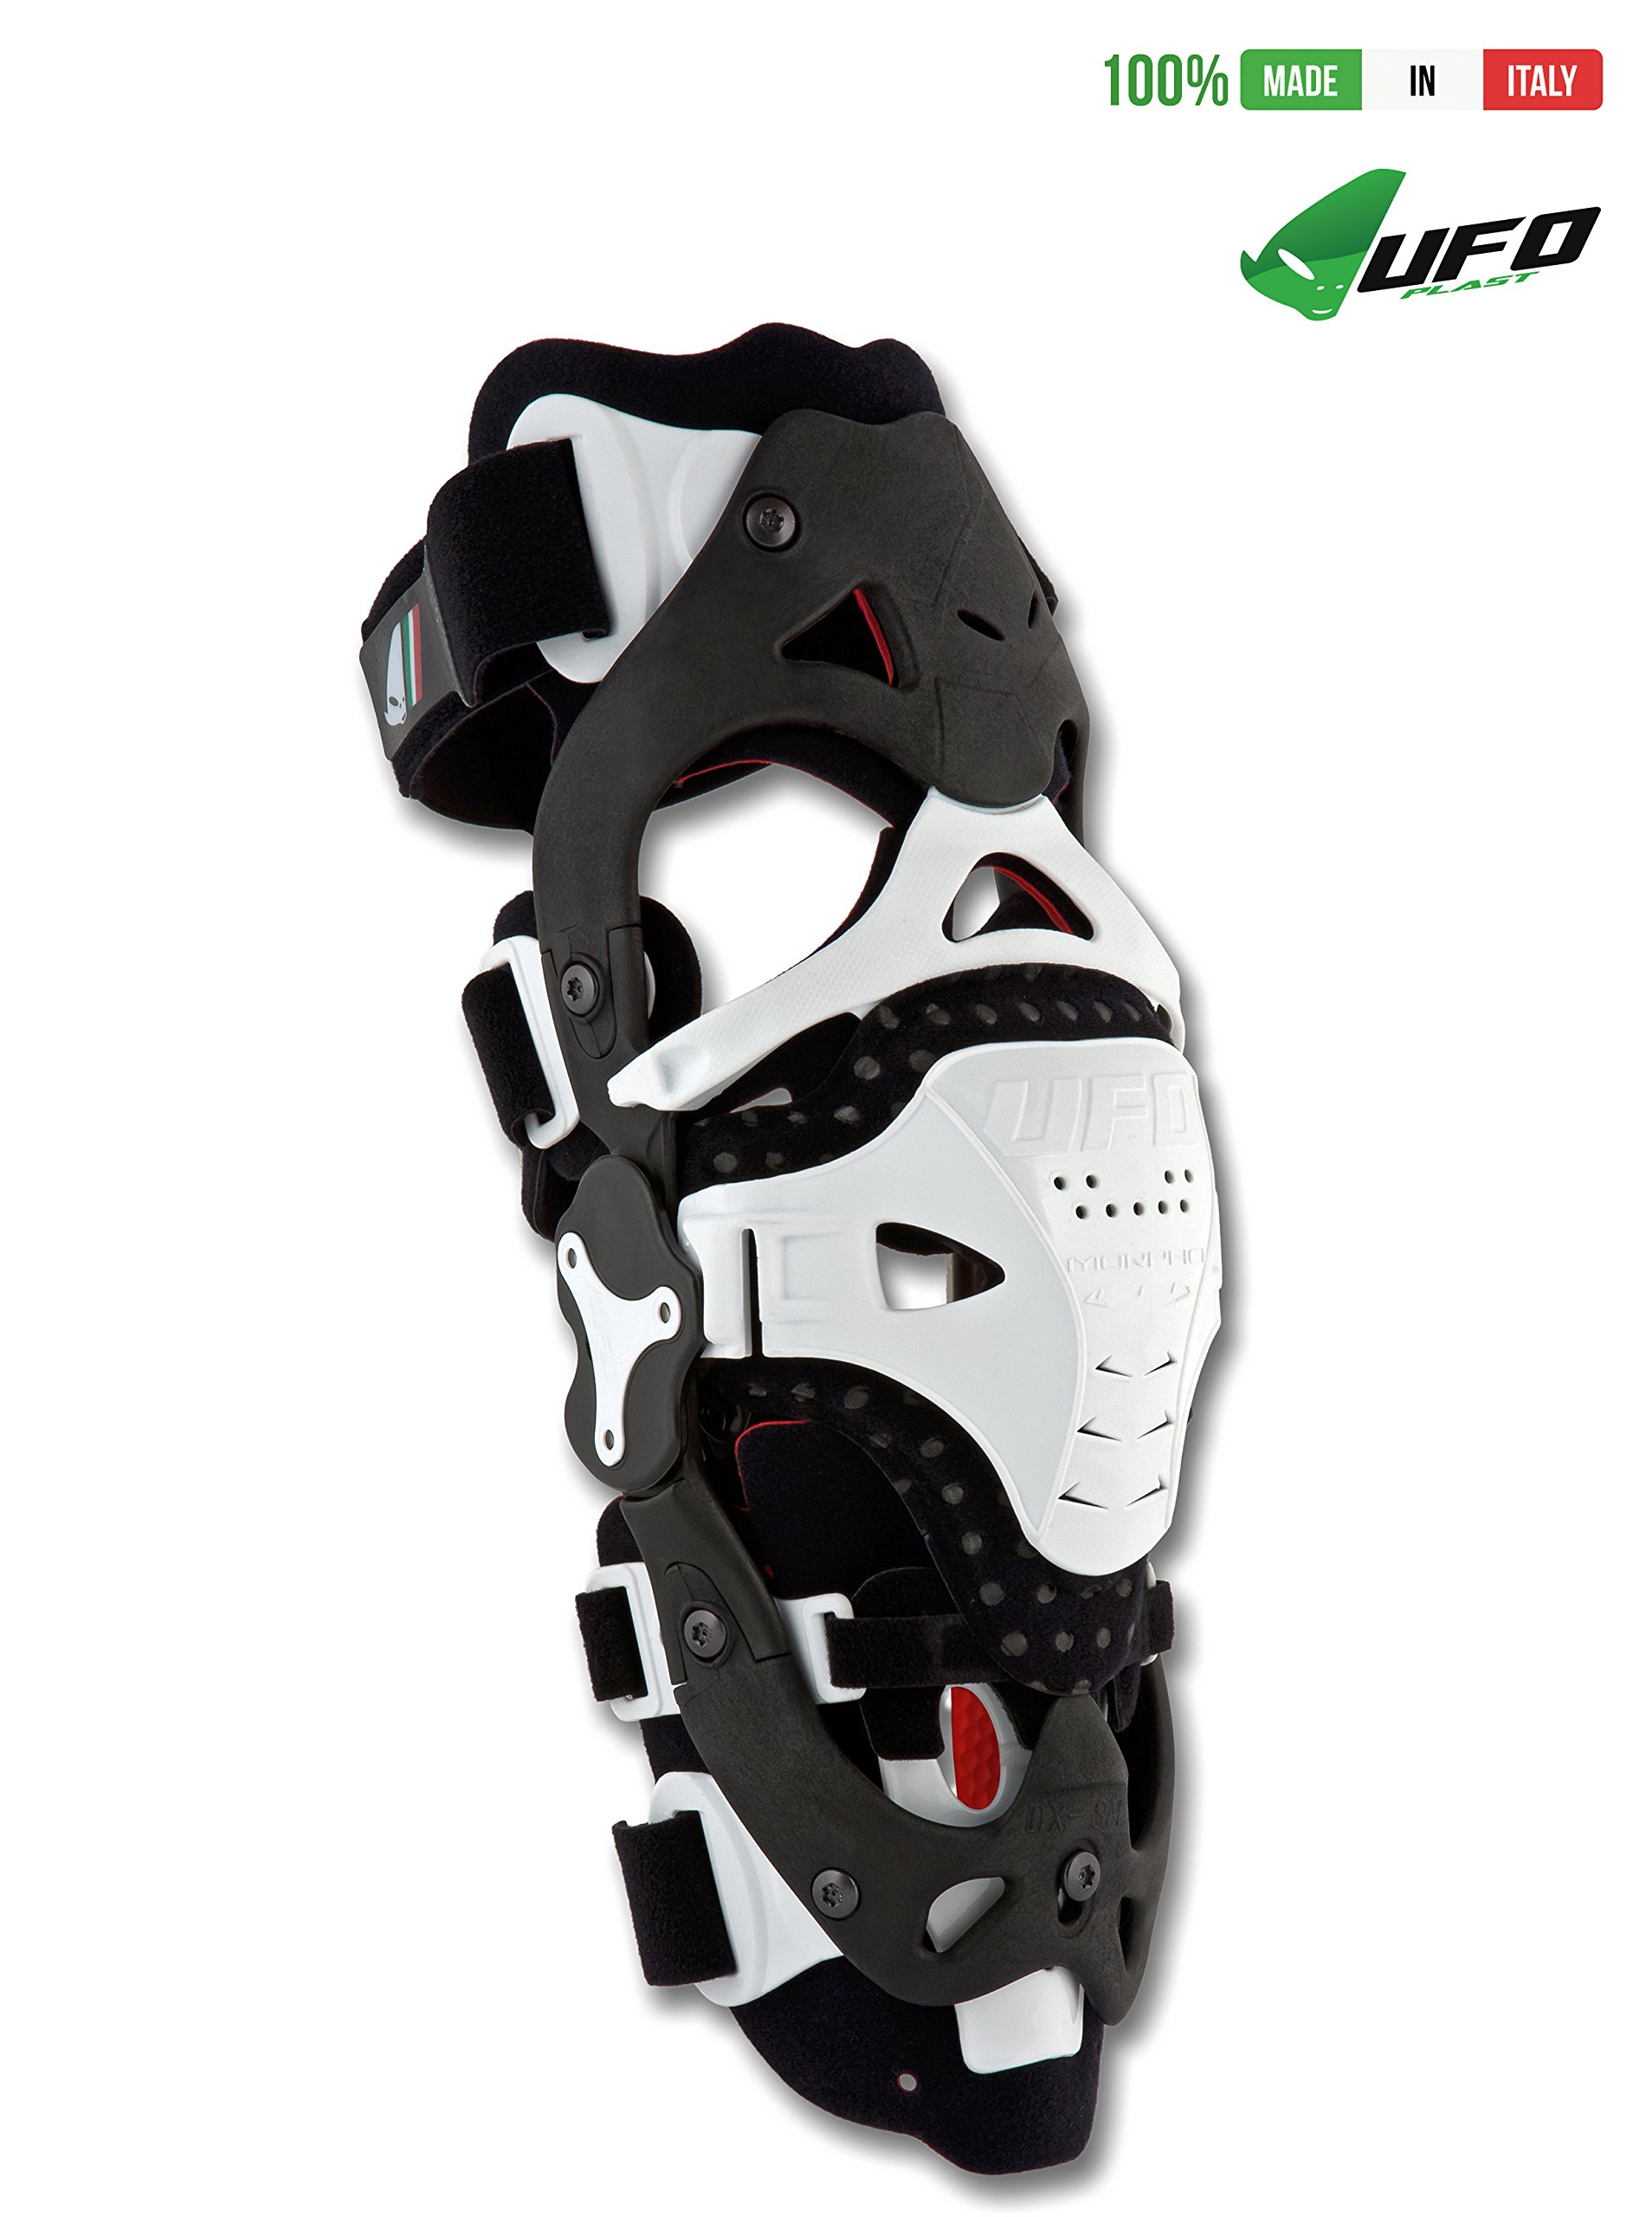 UFO PLAST Made in Italy KB001 MORPHO FIT - LEFT SIDE Jointed Brace for Knee Protection in Sport / Patella Protection / Motorcycle, Motocross, Snowboard, Skateboard, Ski - L/XL / Color: White